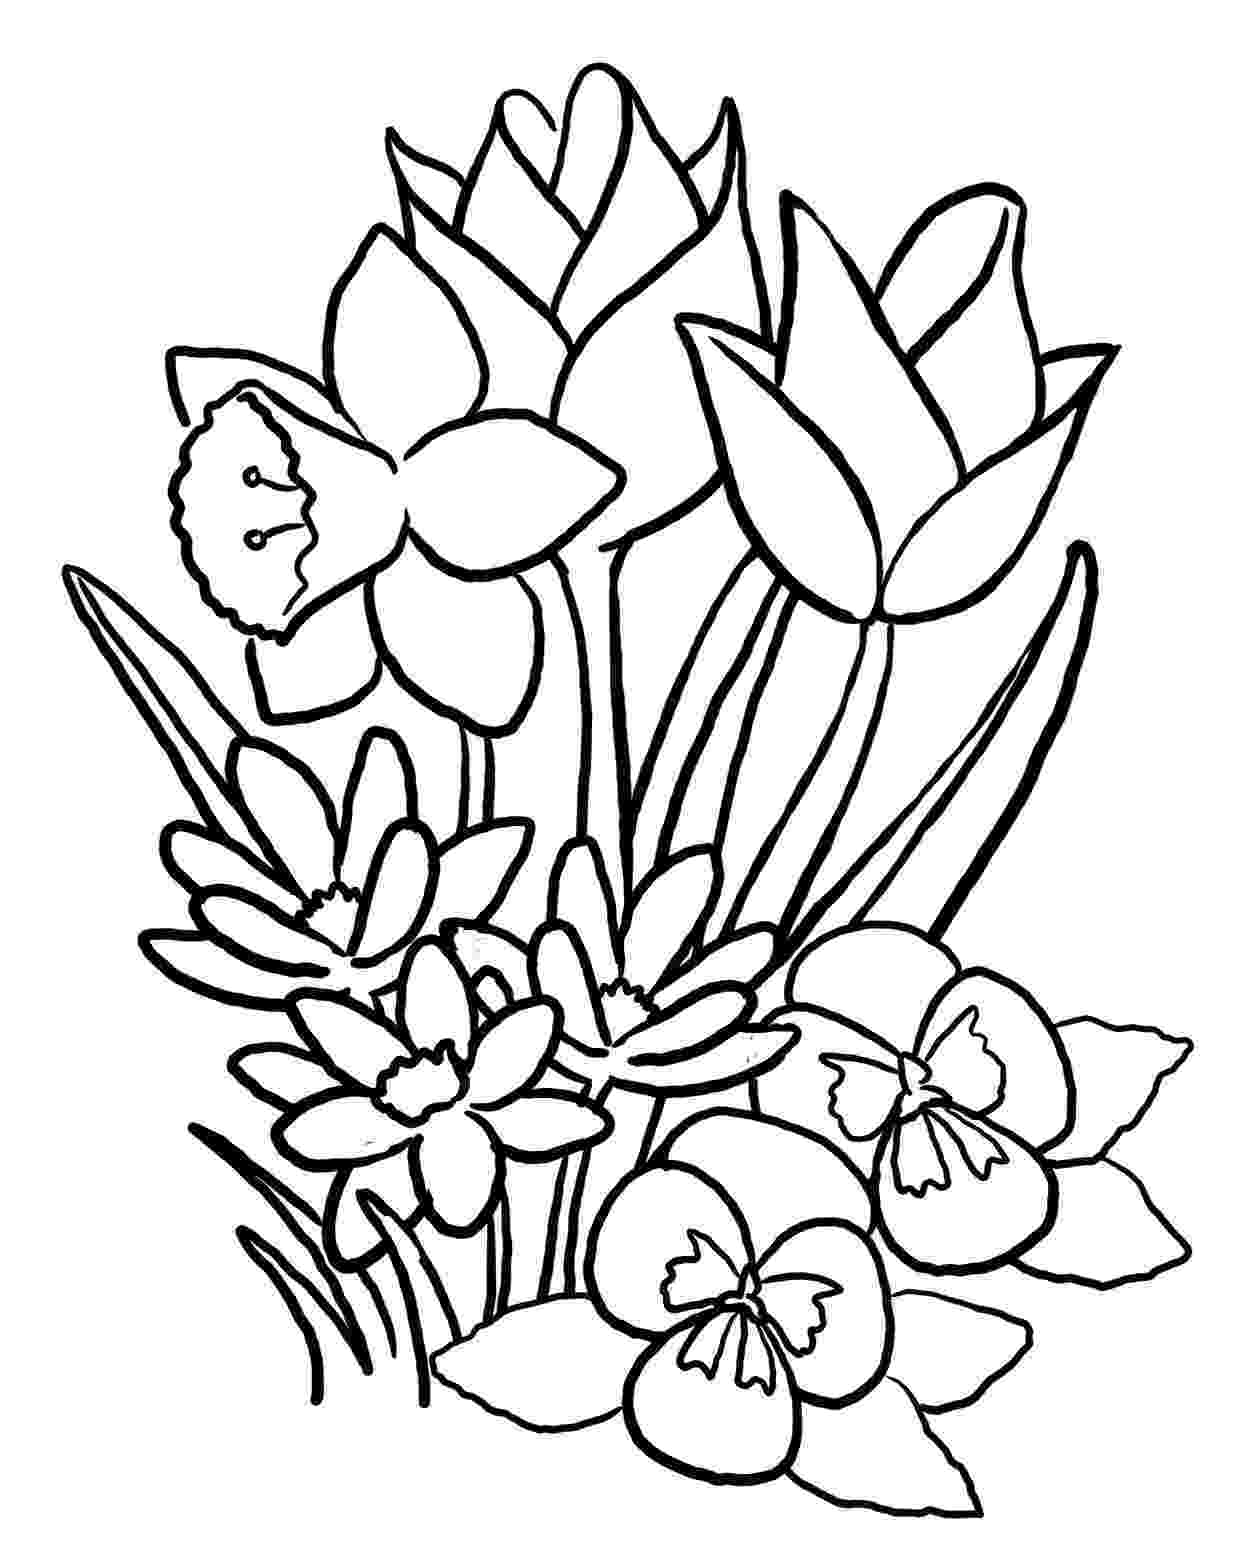 flowers to color print free printable flower coloring pages for kids cool2bkids flowers color to print